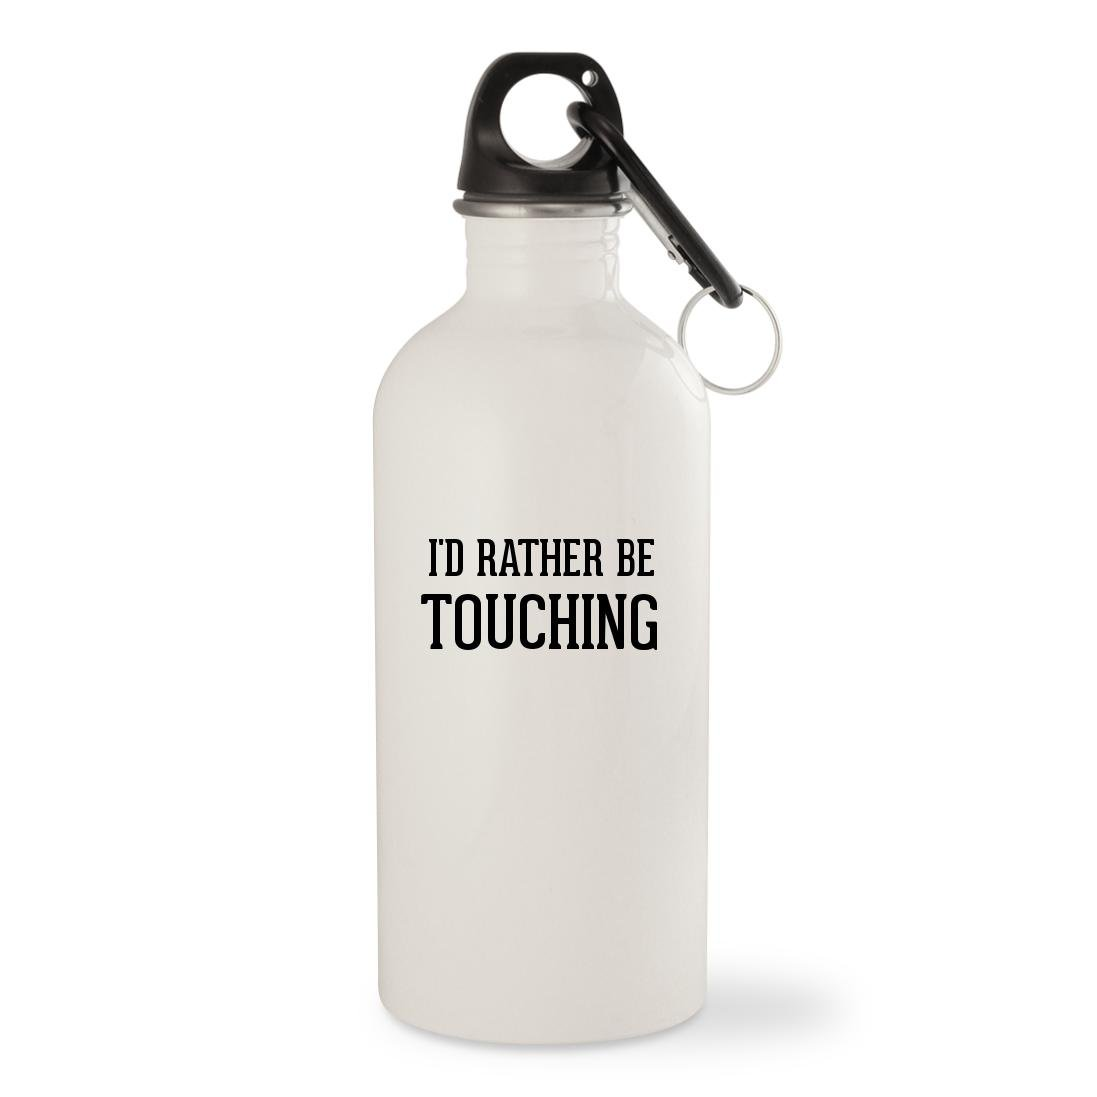 I'd Rather Be TOUCHING - White 20oz Stainless Steel Water Bottle with Carabiner